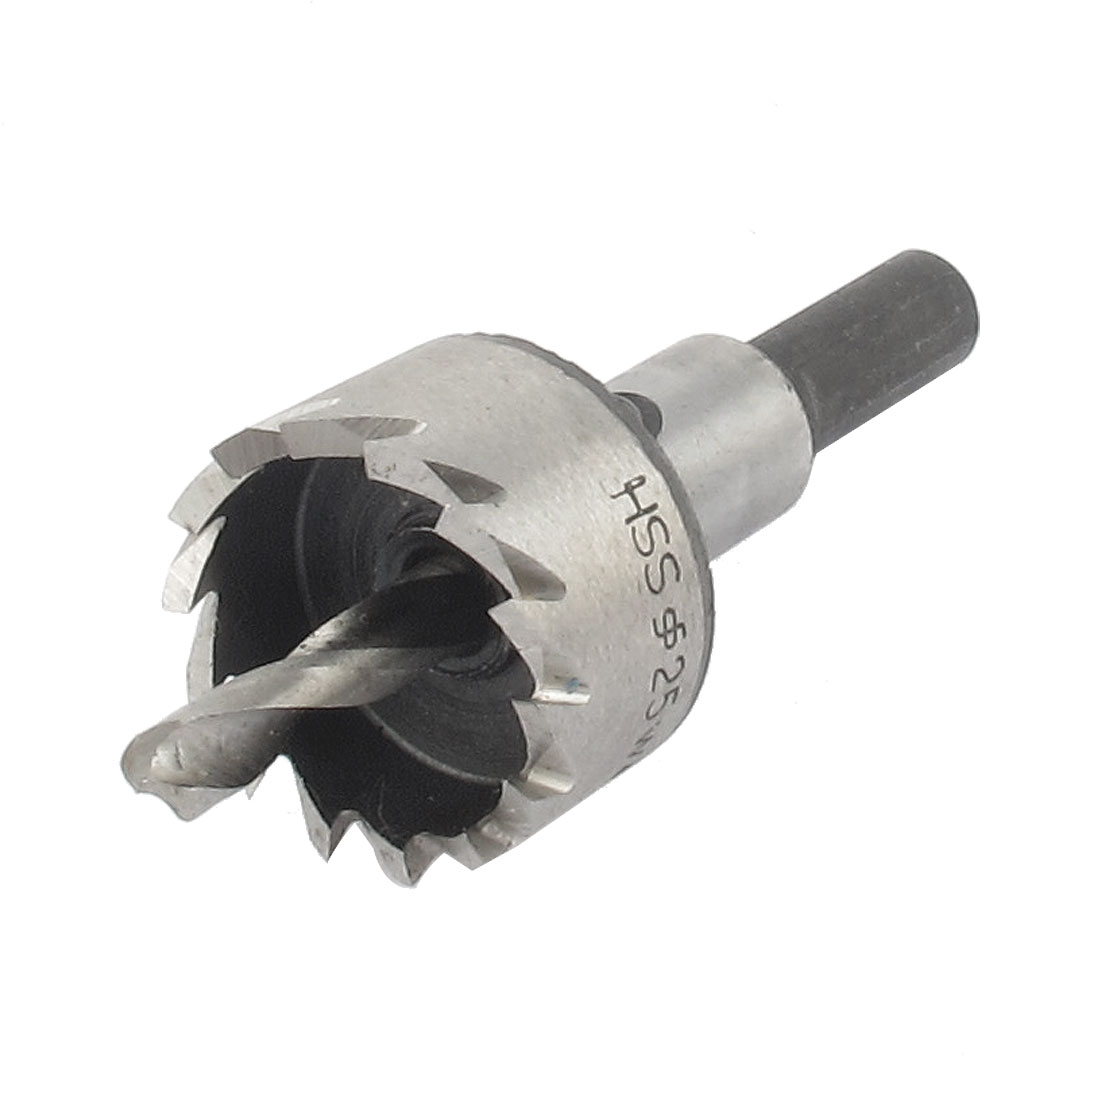 25mm Cutting Dia HSS Hole Saw Cutter Tooth Drill Bit Tool